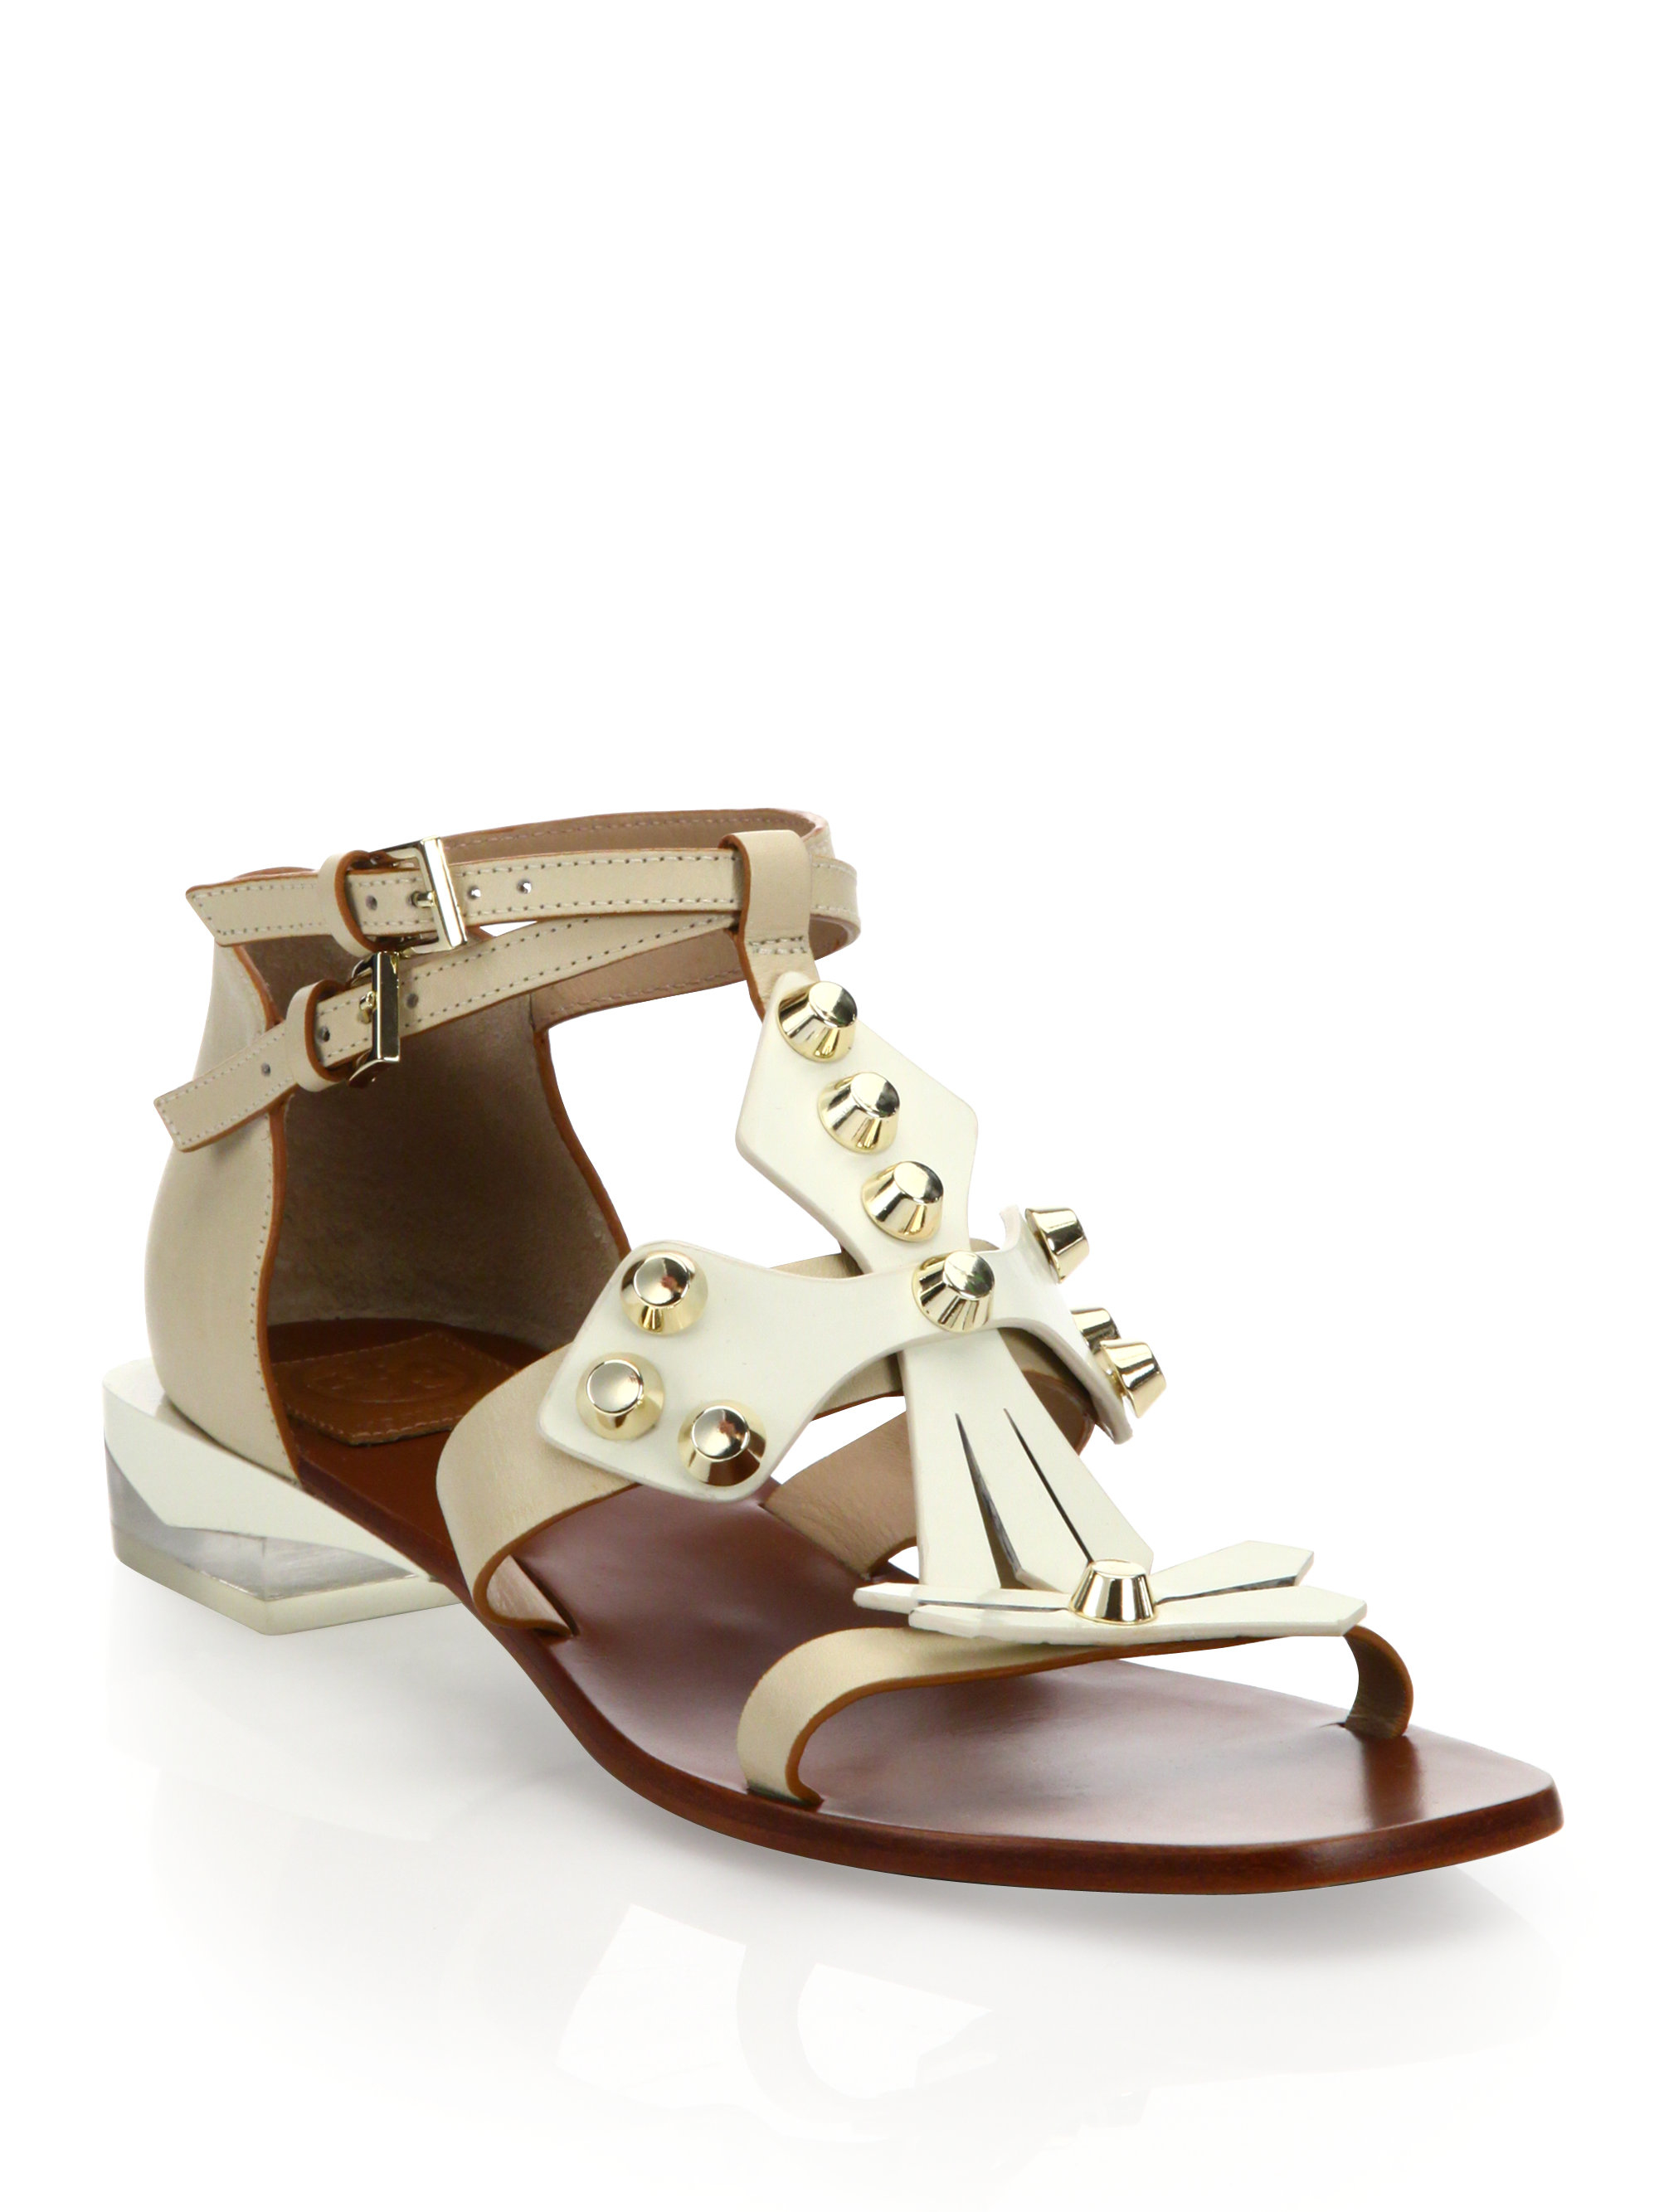 Lyst - Tory Burch Aurora Leather Ankle-strap Sandals in White